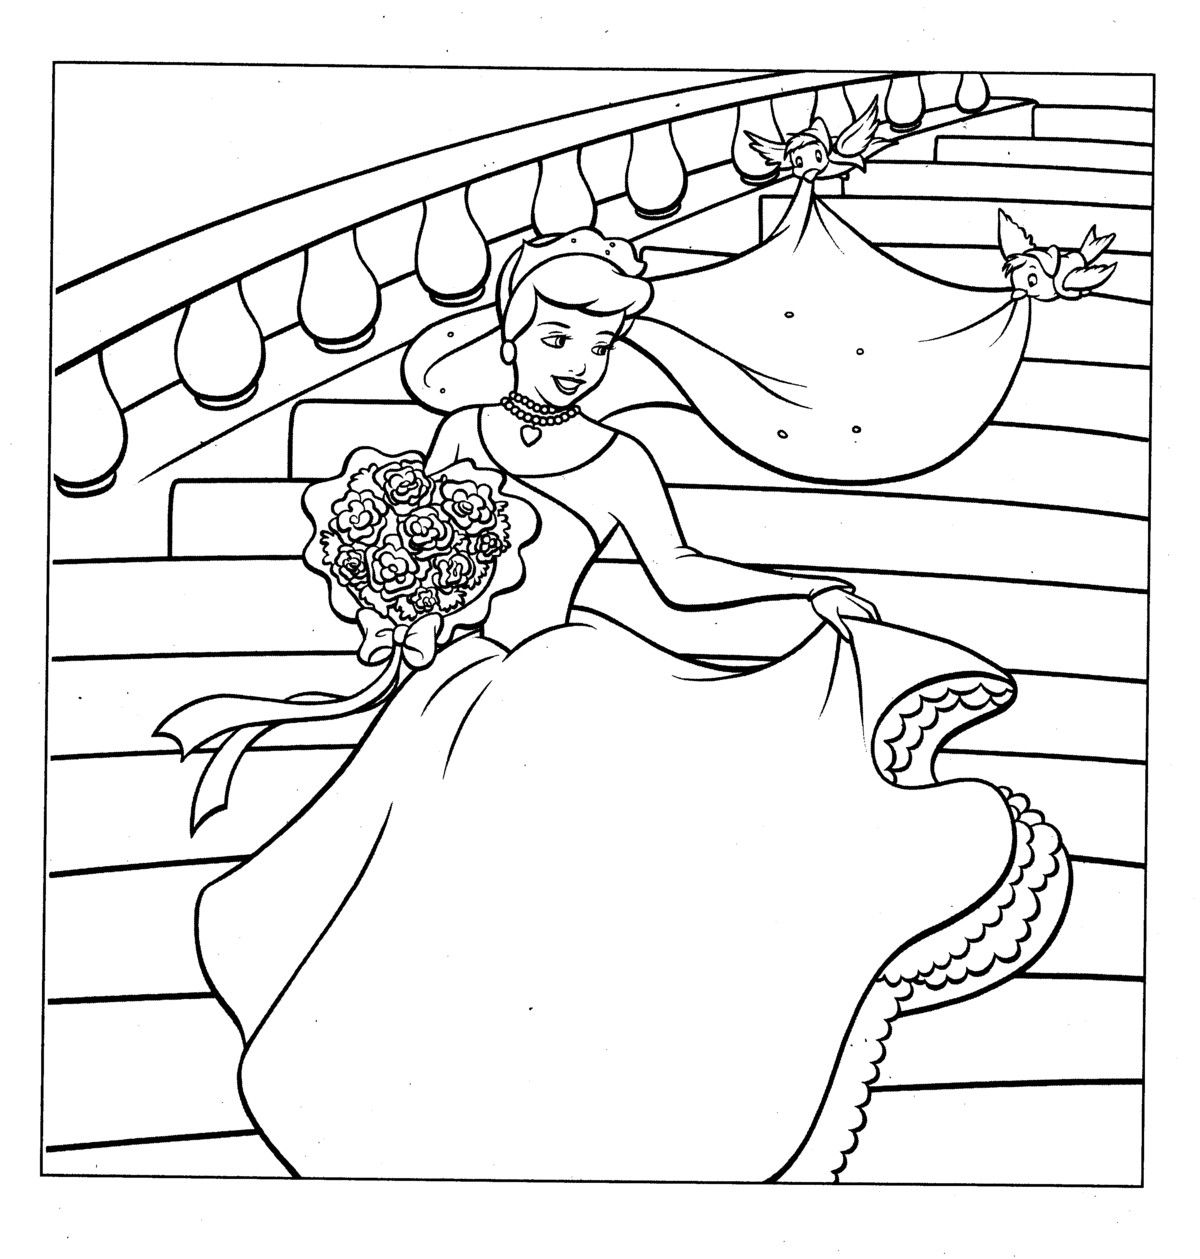 coloring pages cinderella for the best adult coloring books and supplies including drawing